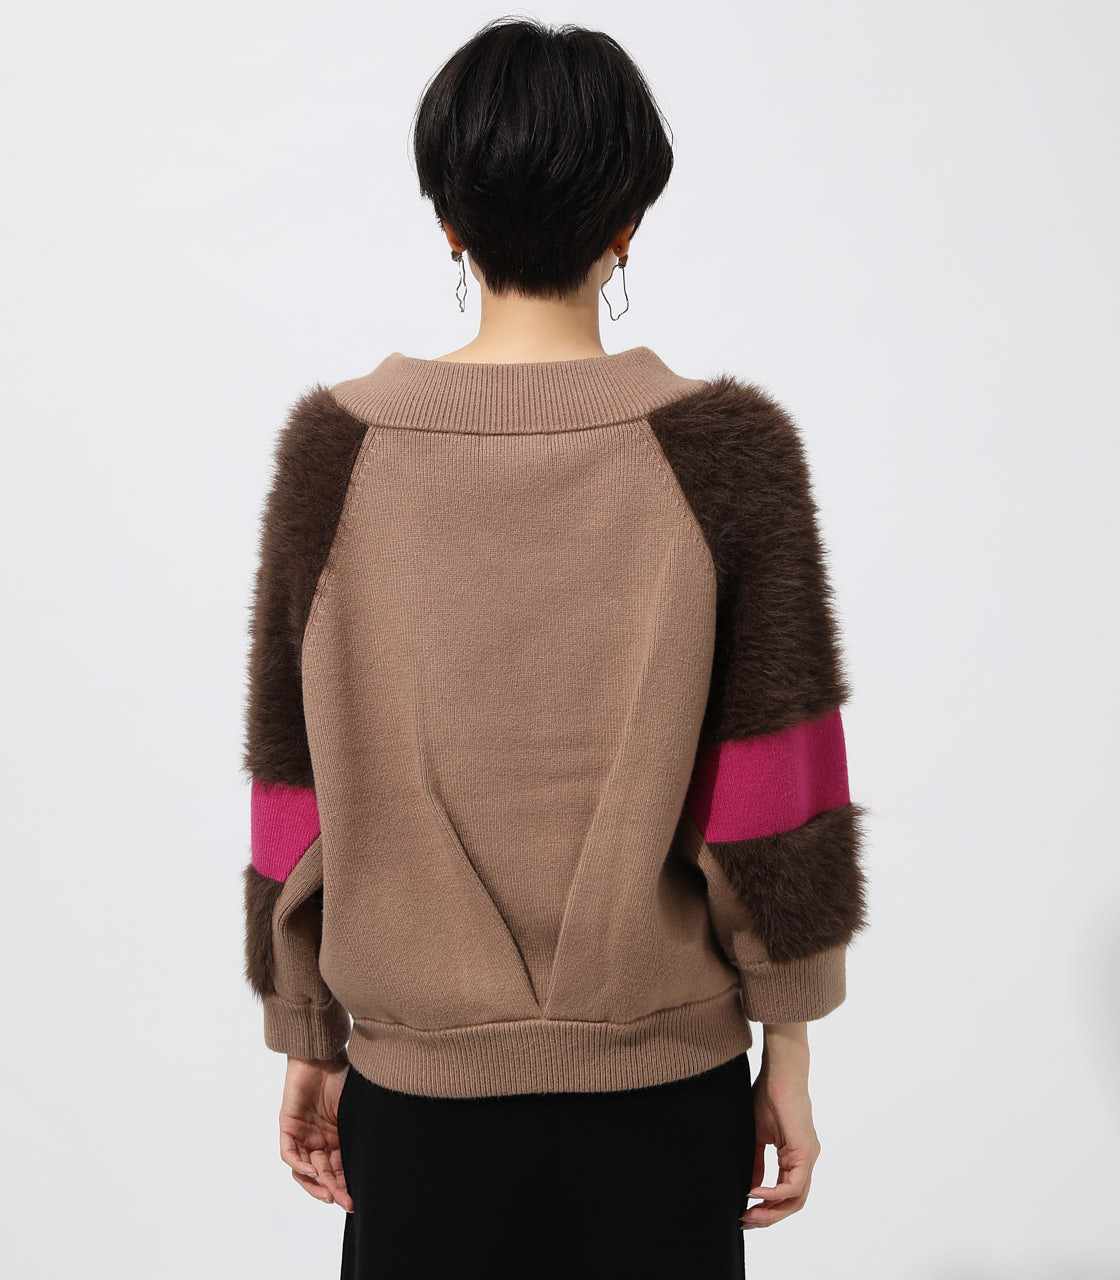 ARM DESIGN KNIT TOPS/アームデザインニットトップス 詳細画像 柄BEG 6